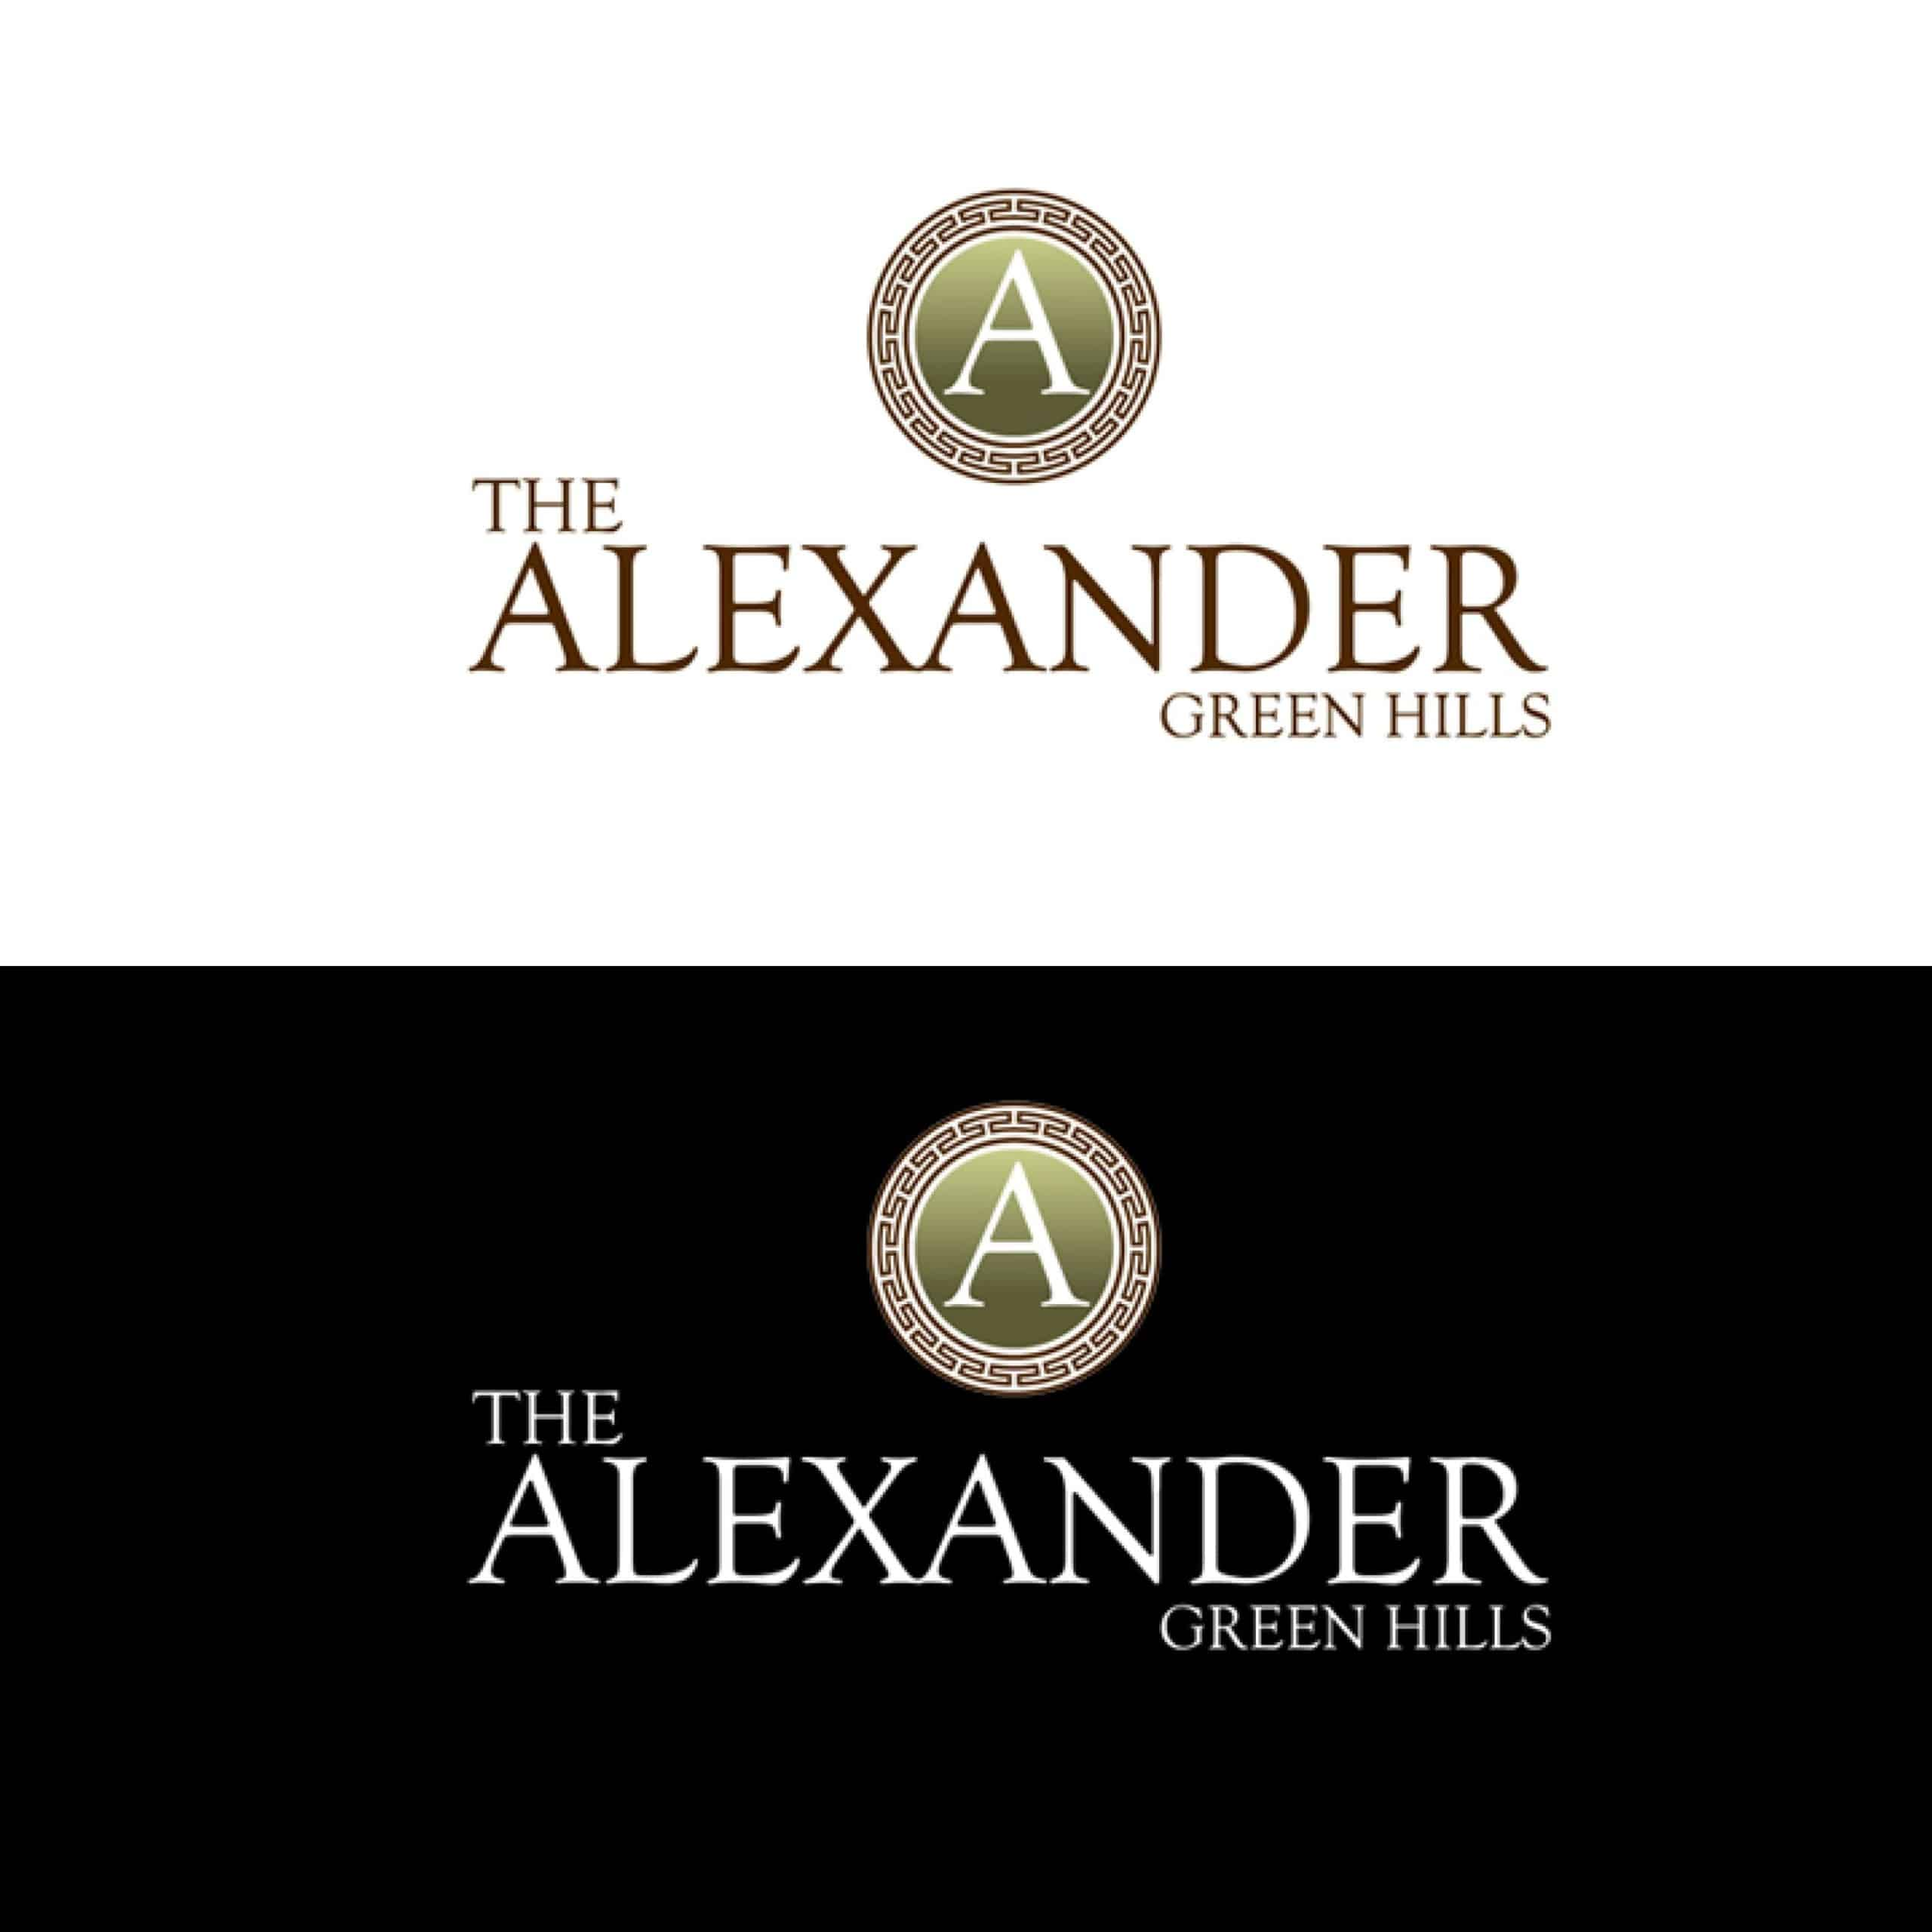 The Alexander - Branding & Marketing